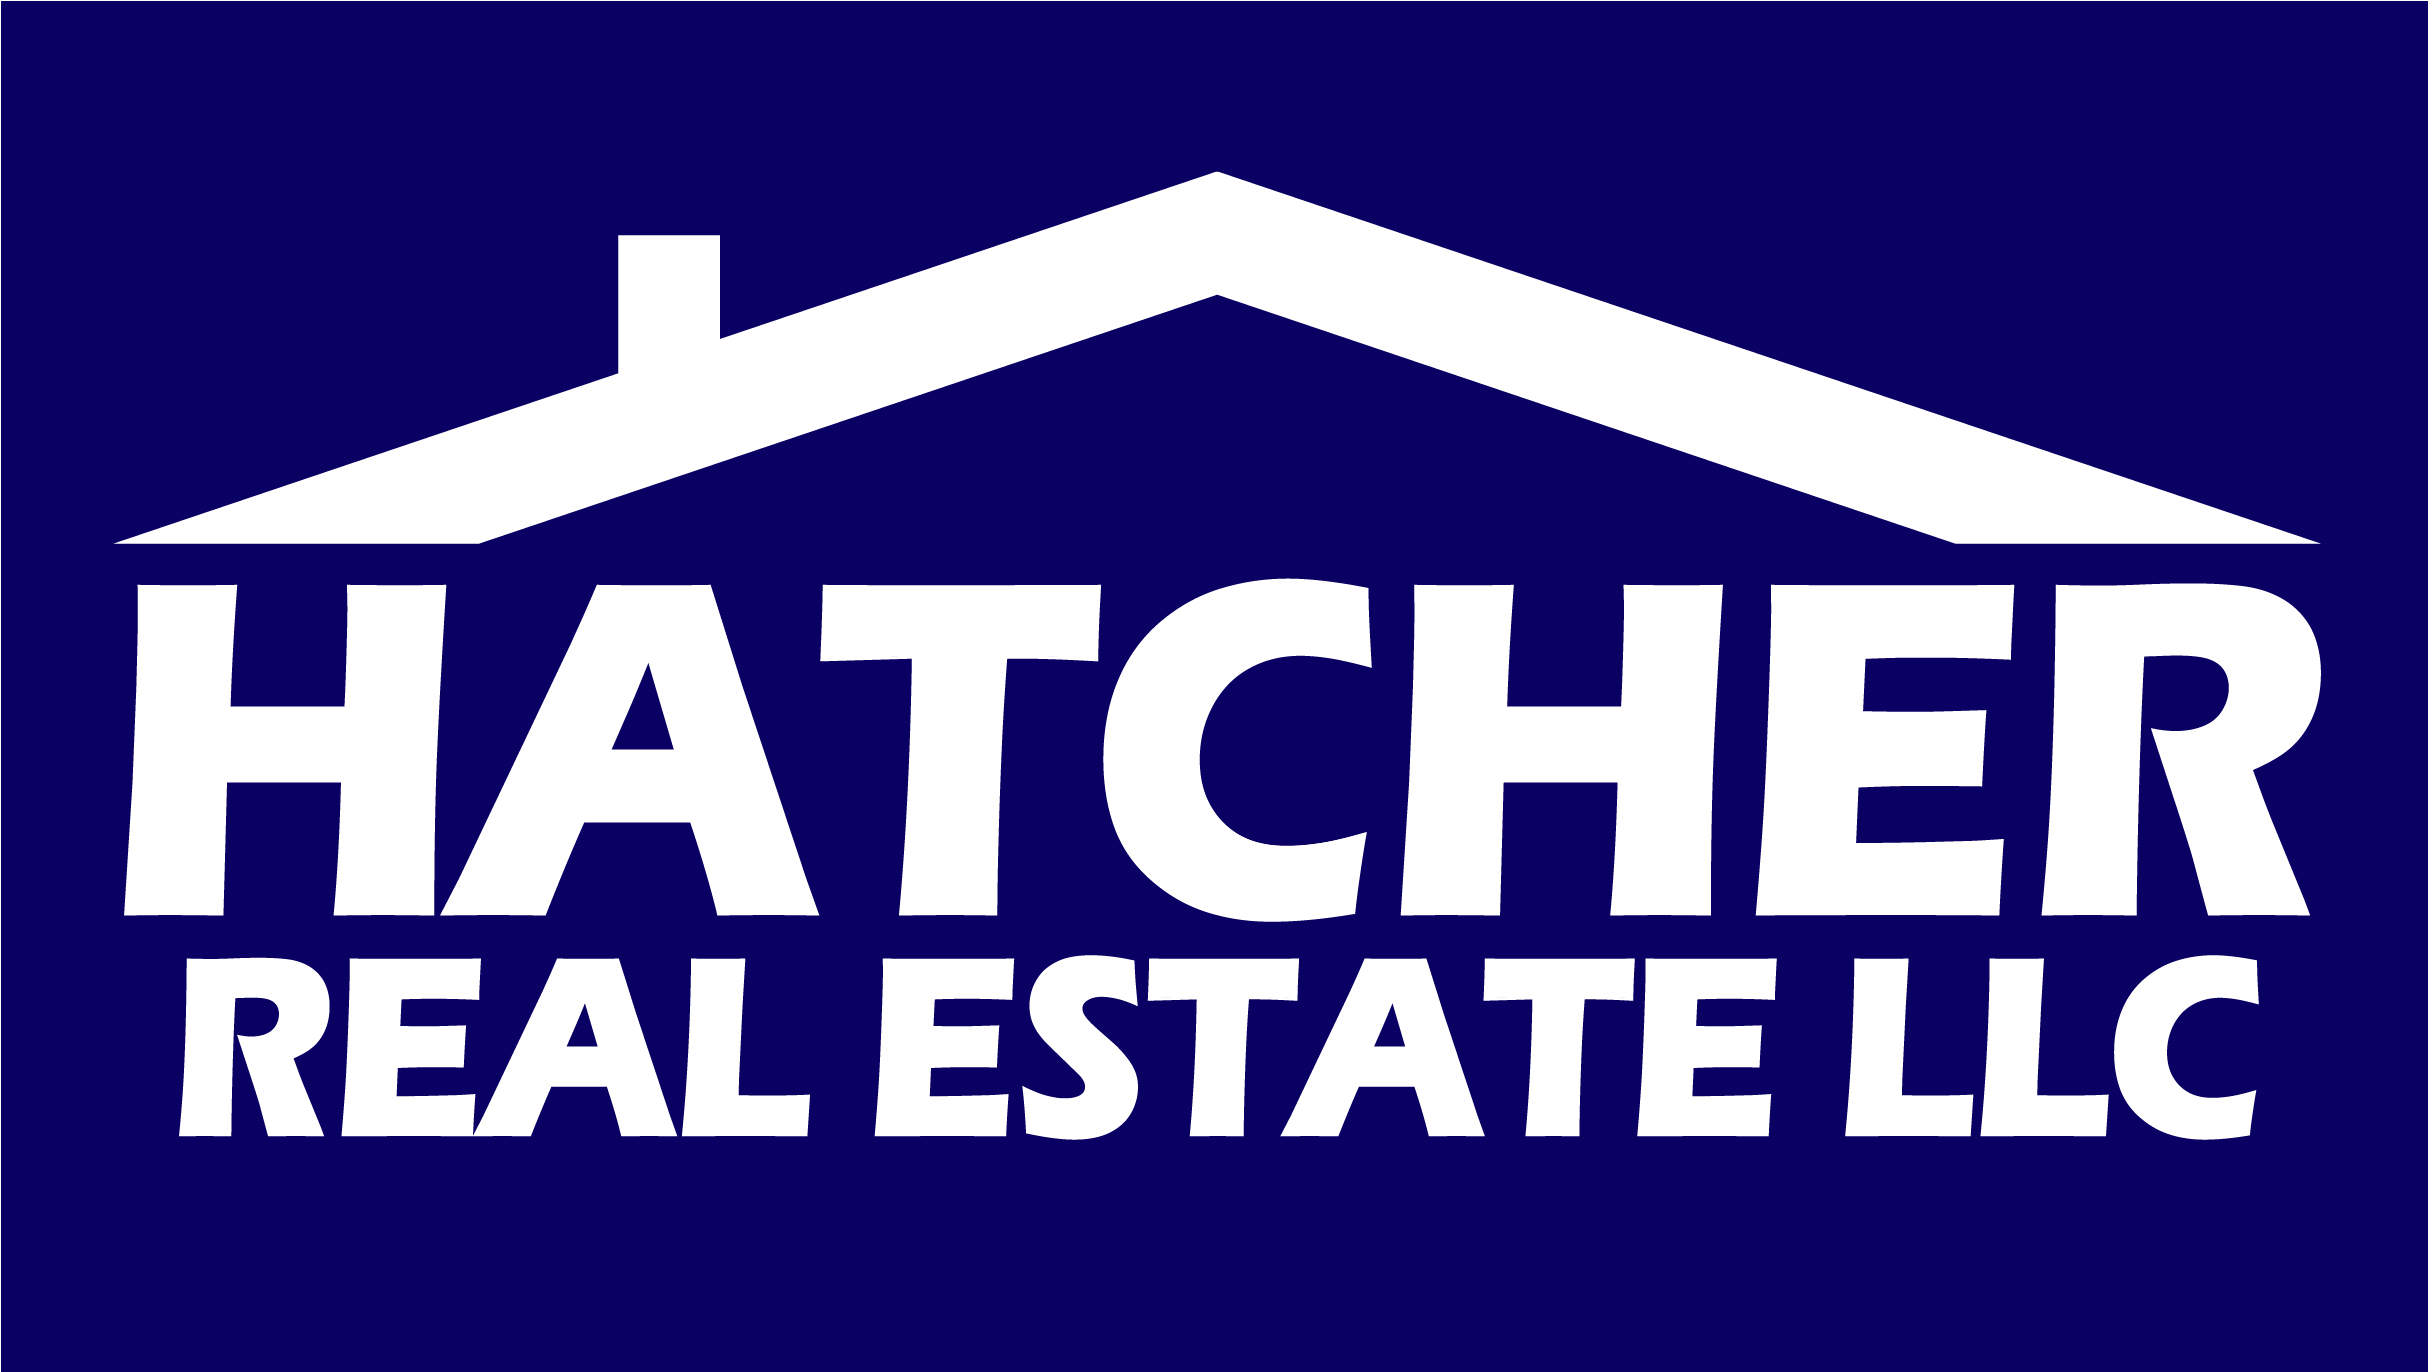 Hatcher Real Estate LLC